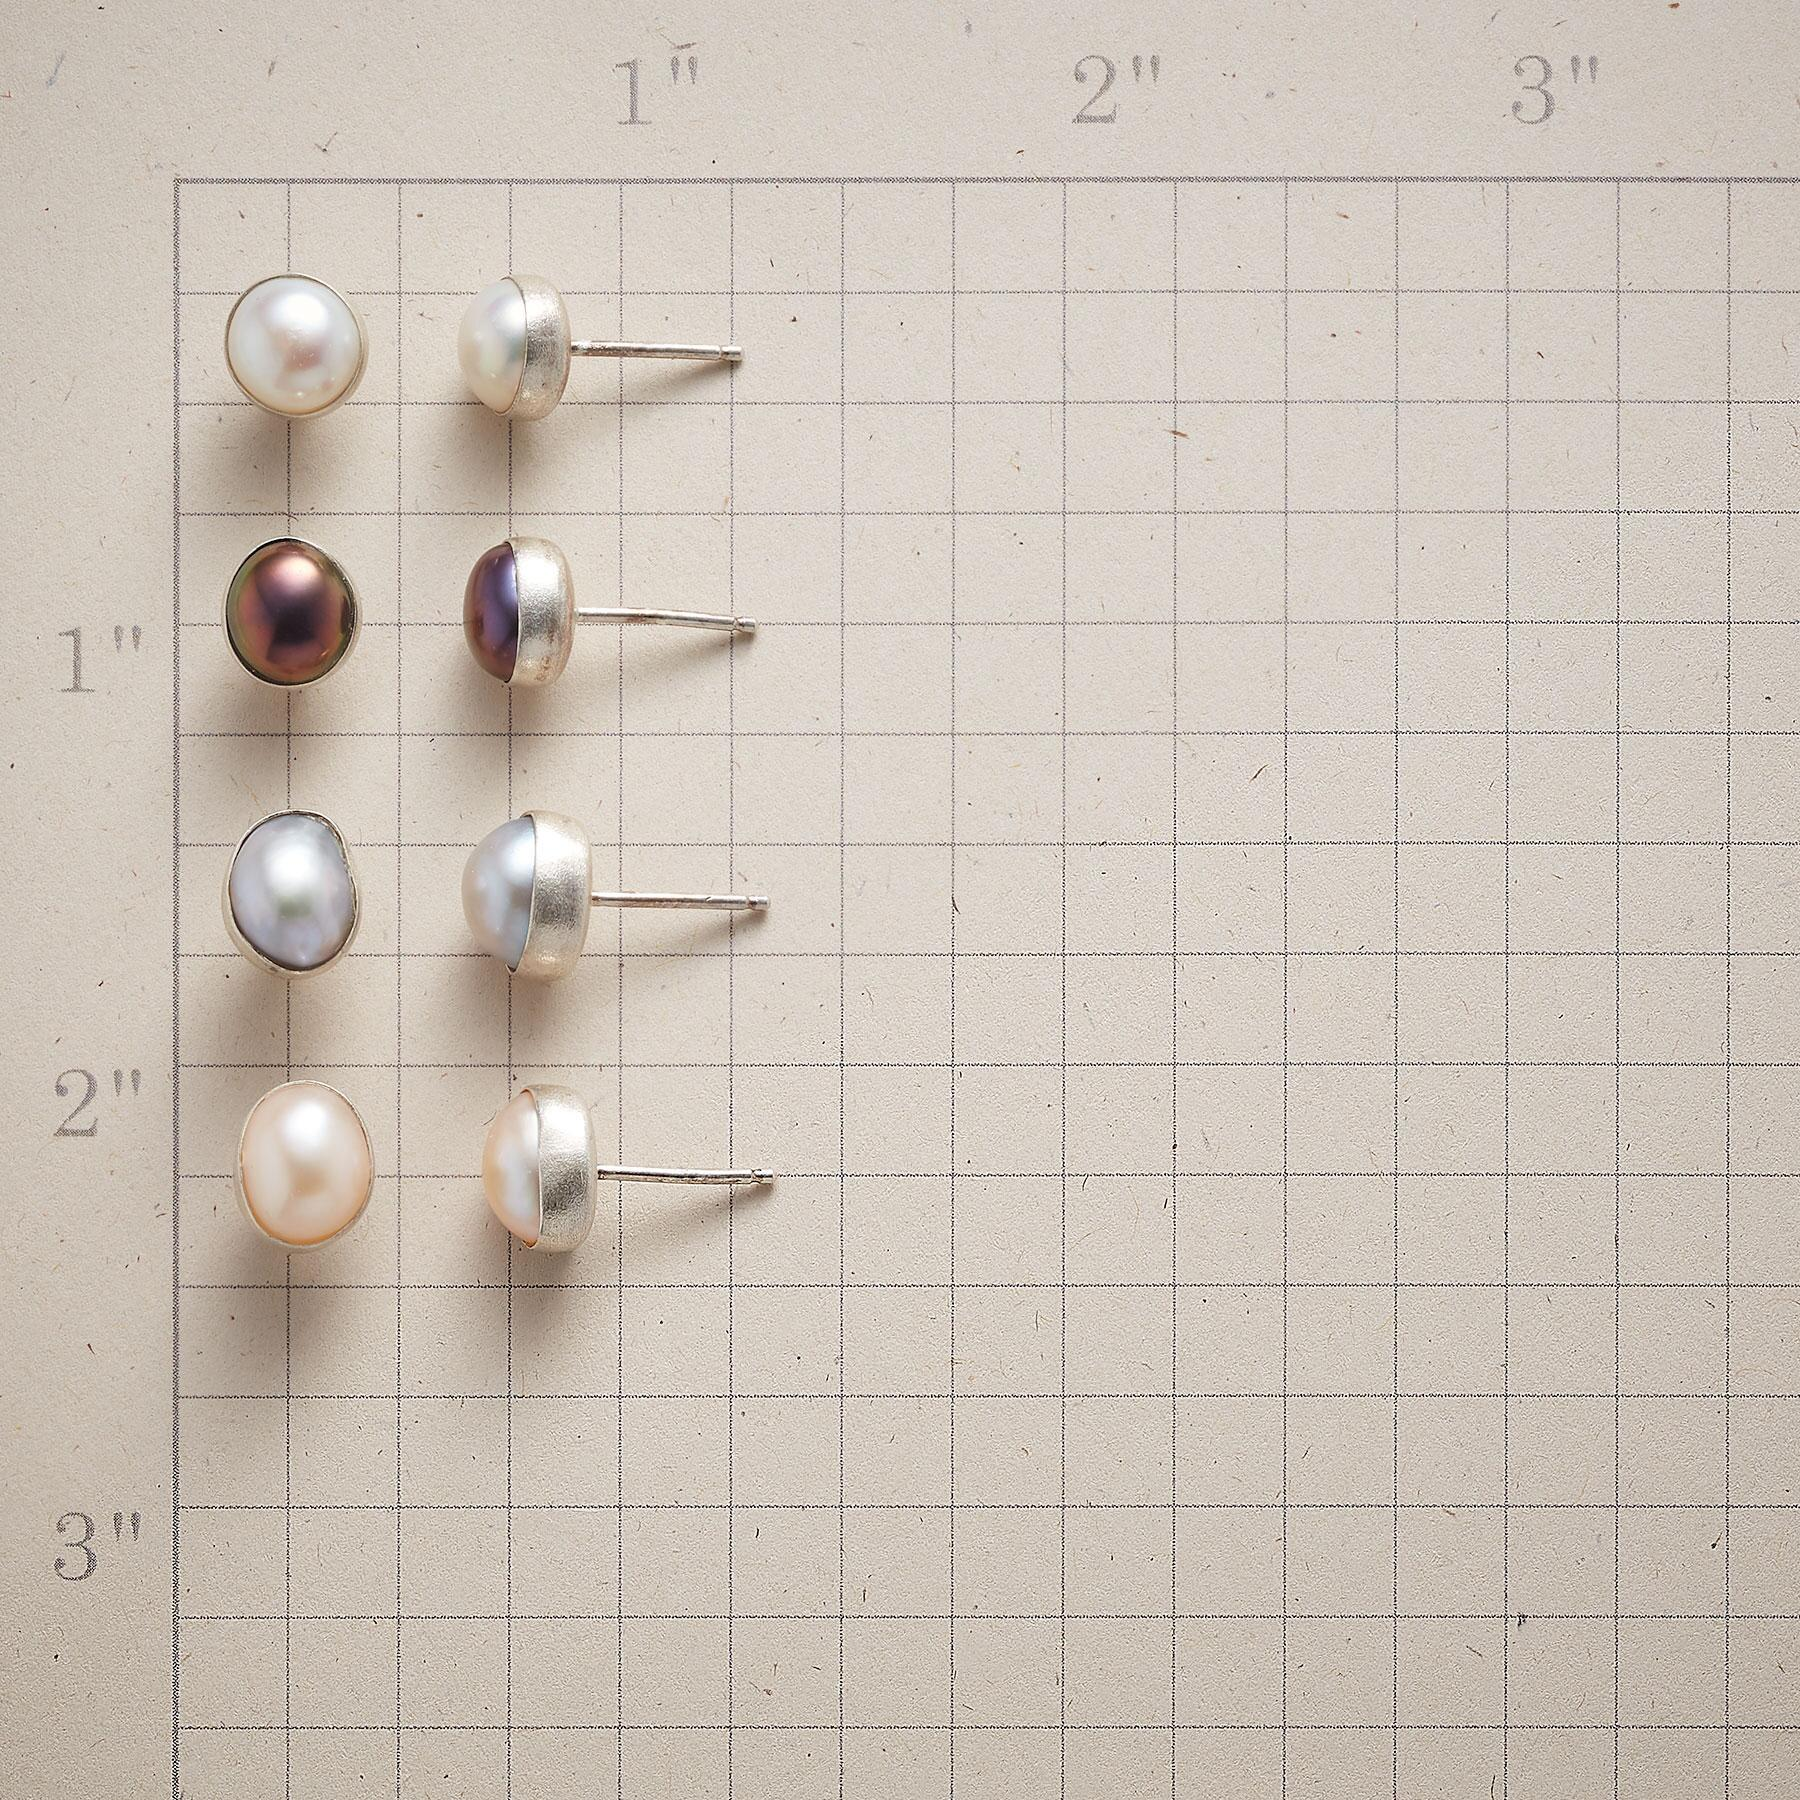 SHADES OF PEARL EARRINGS, SET OF 4: View 2